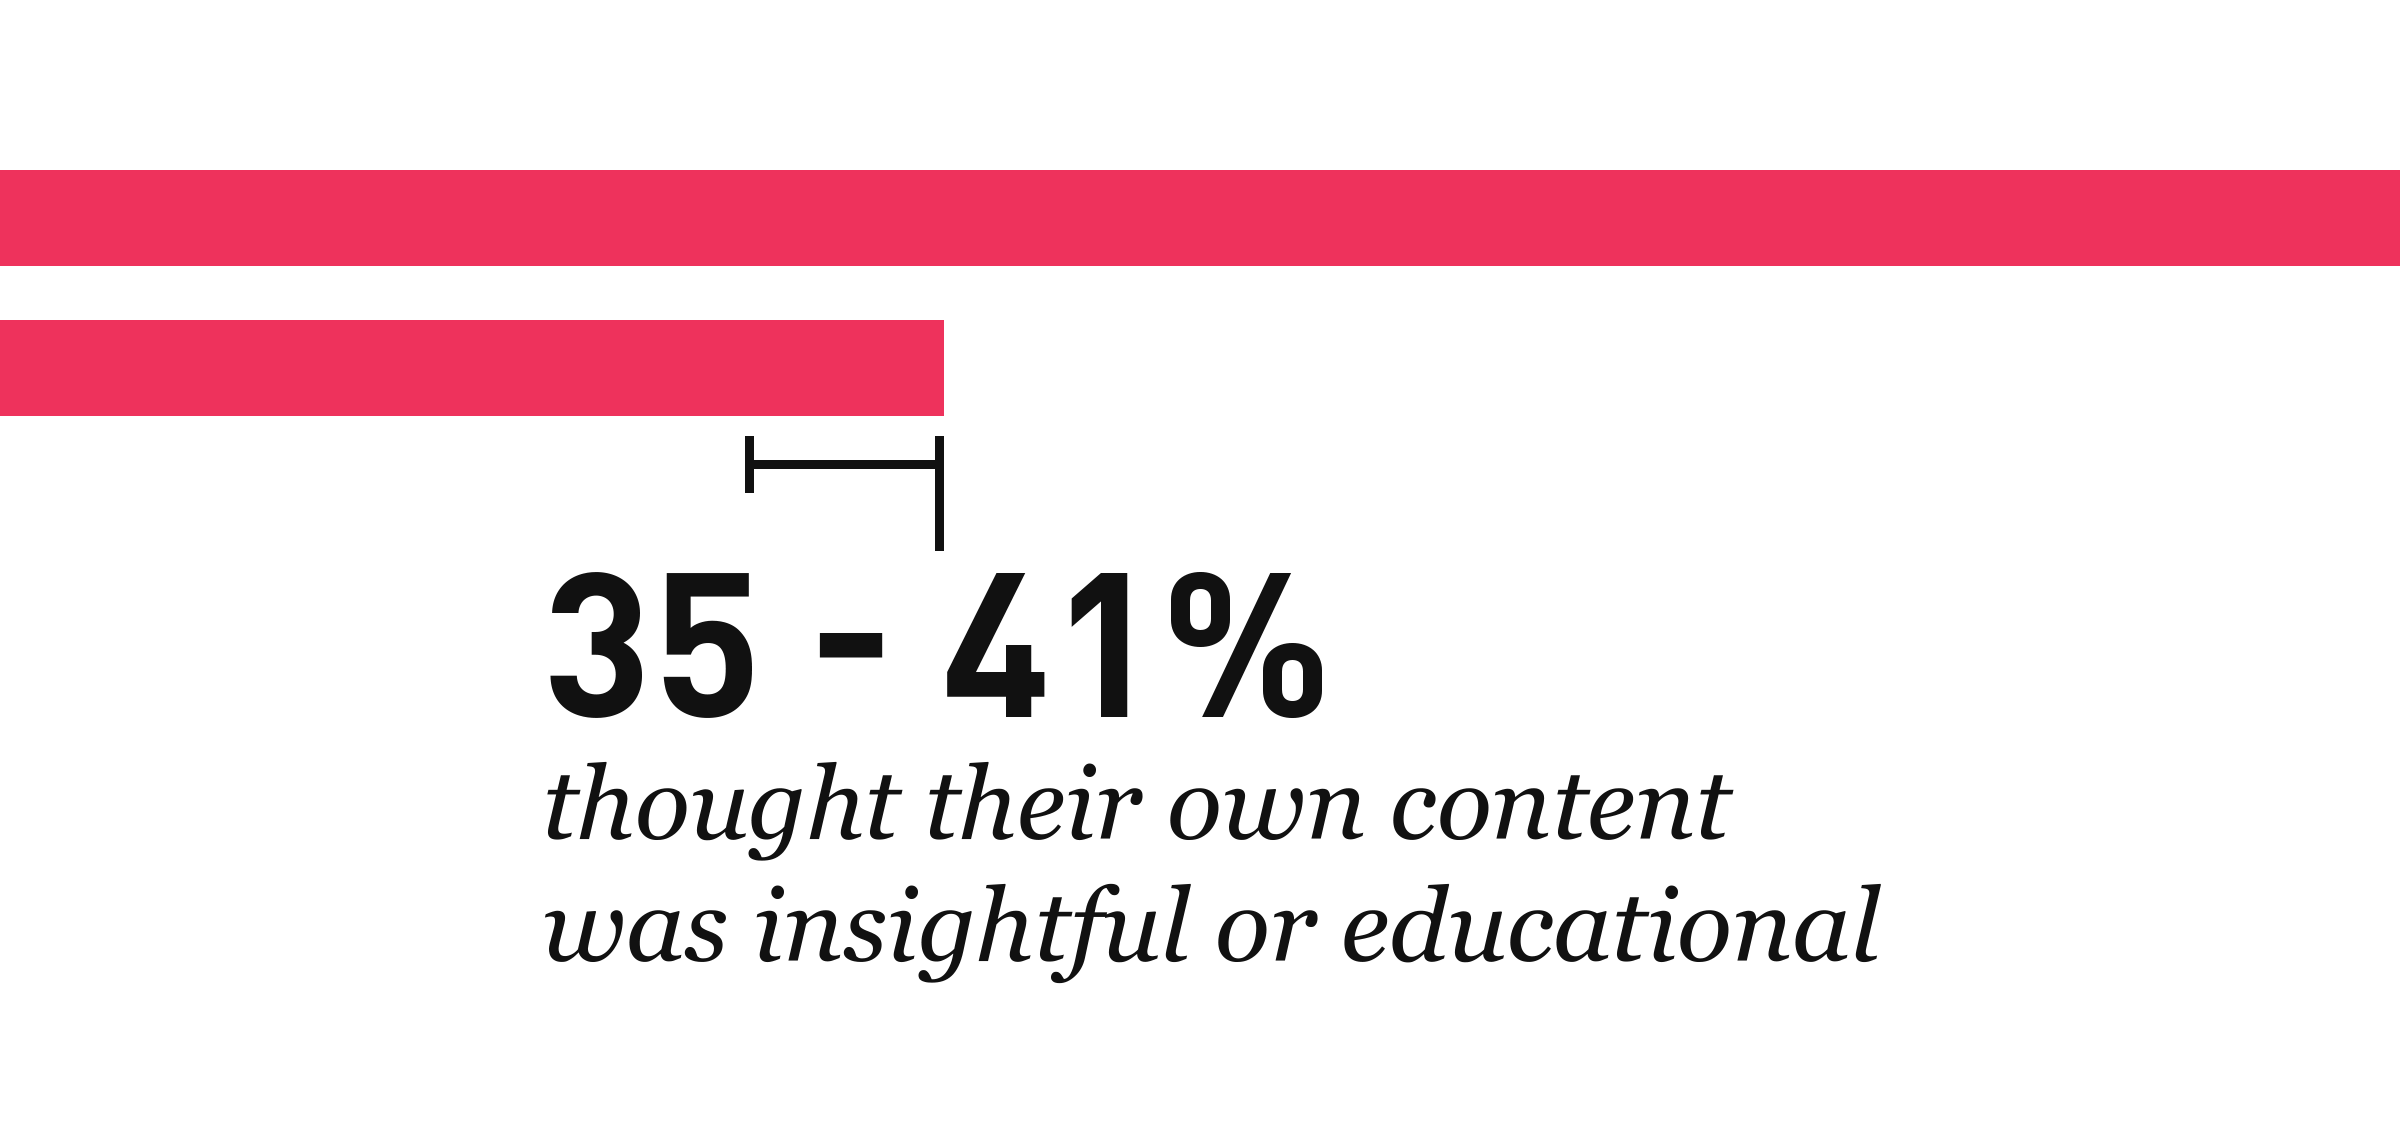 data-the-key-to-content-35-41-percent